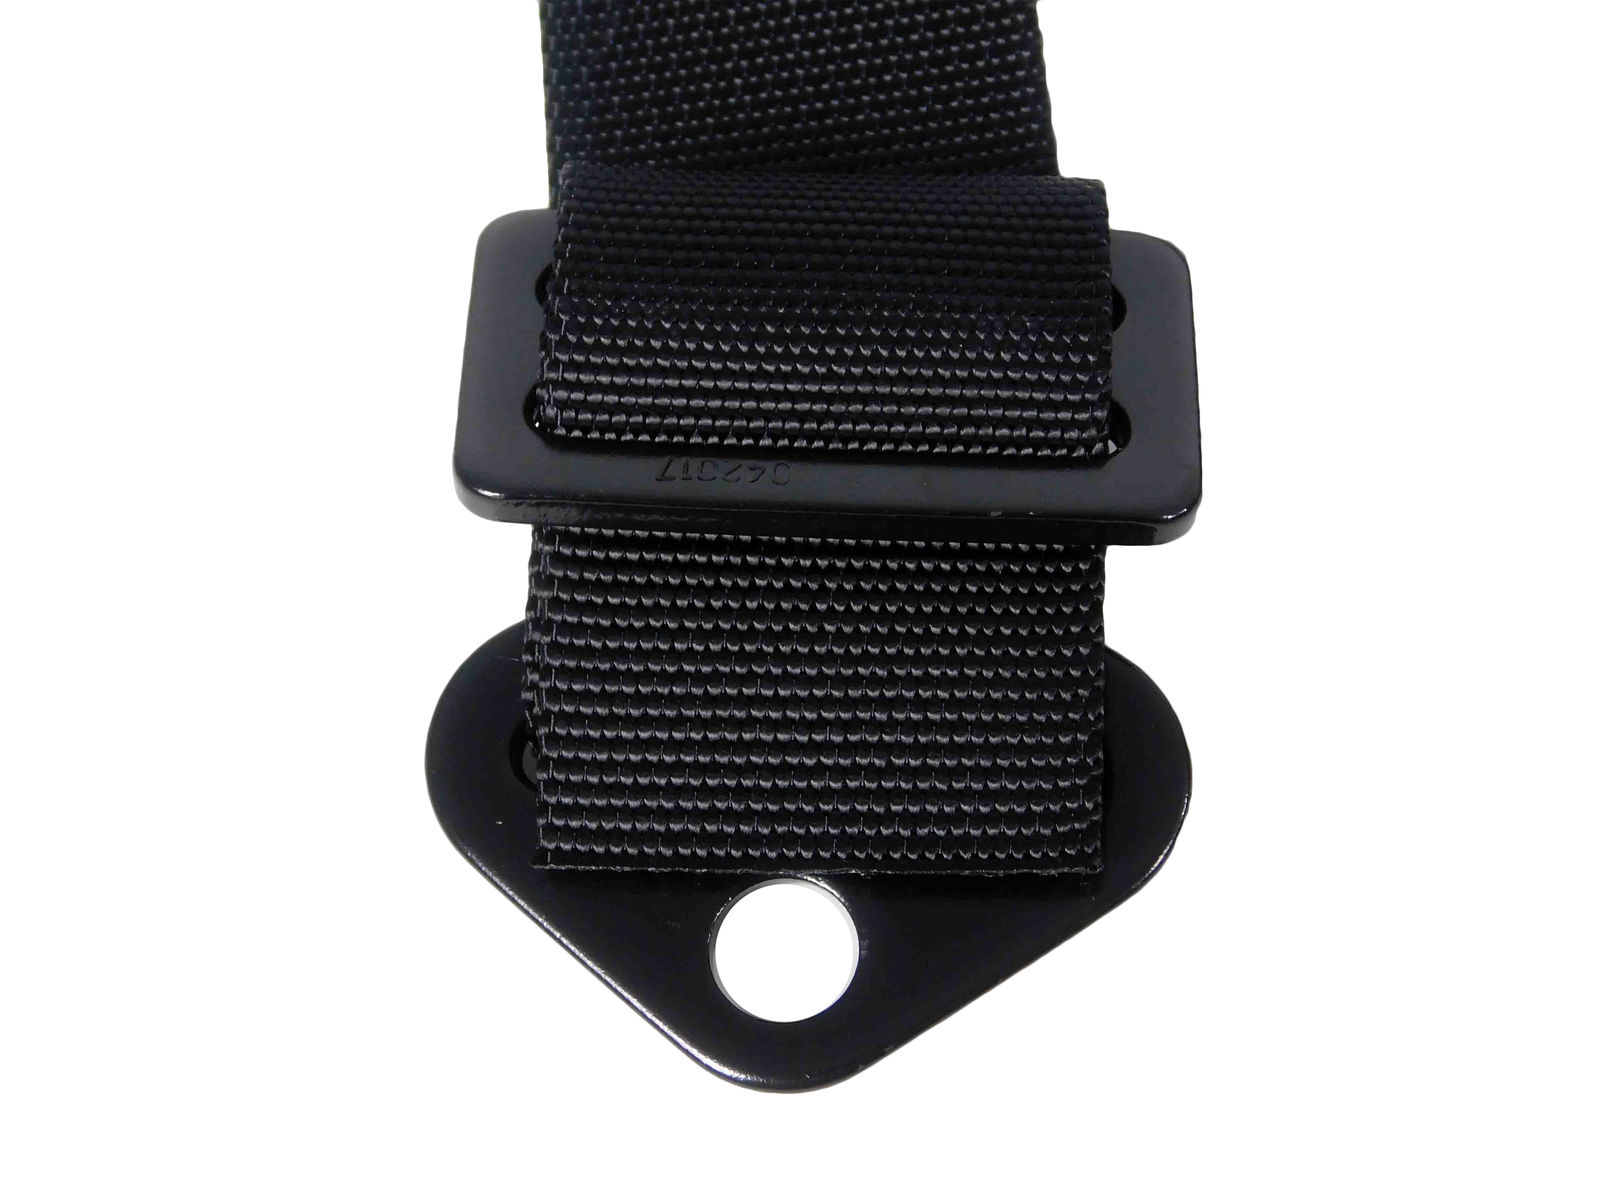 Pro-Armor-A114220-Black-4-Point-Harness-2inch-Straps-image-5